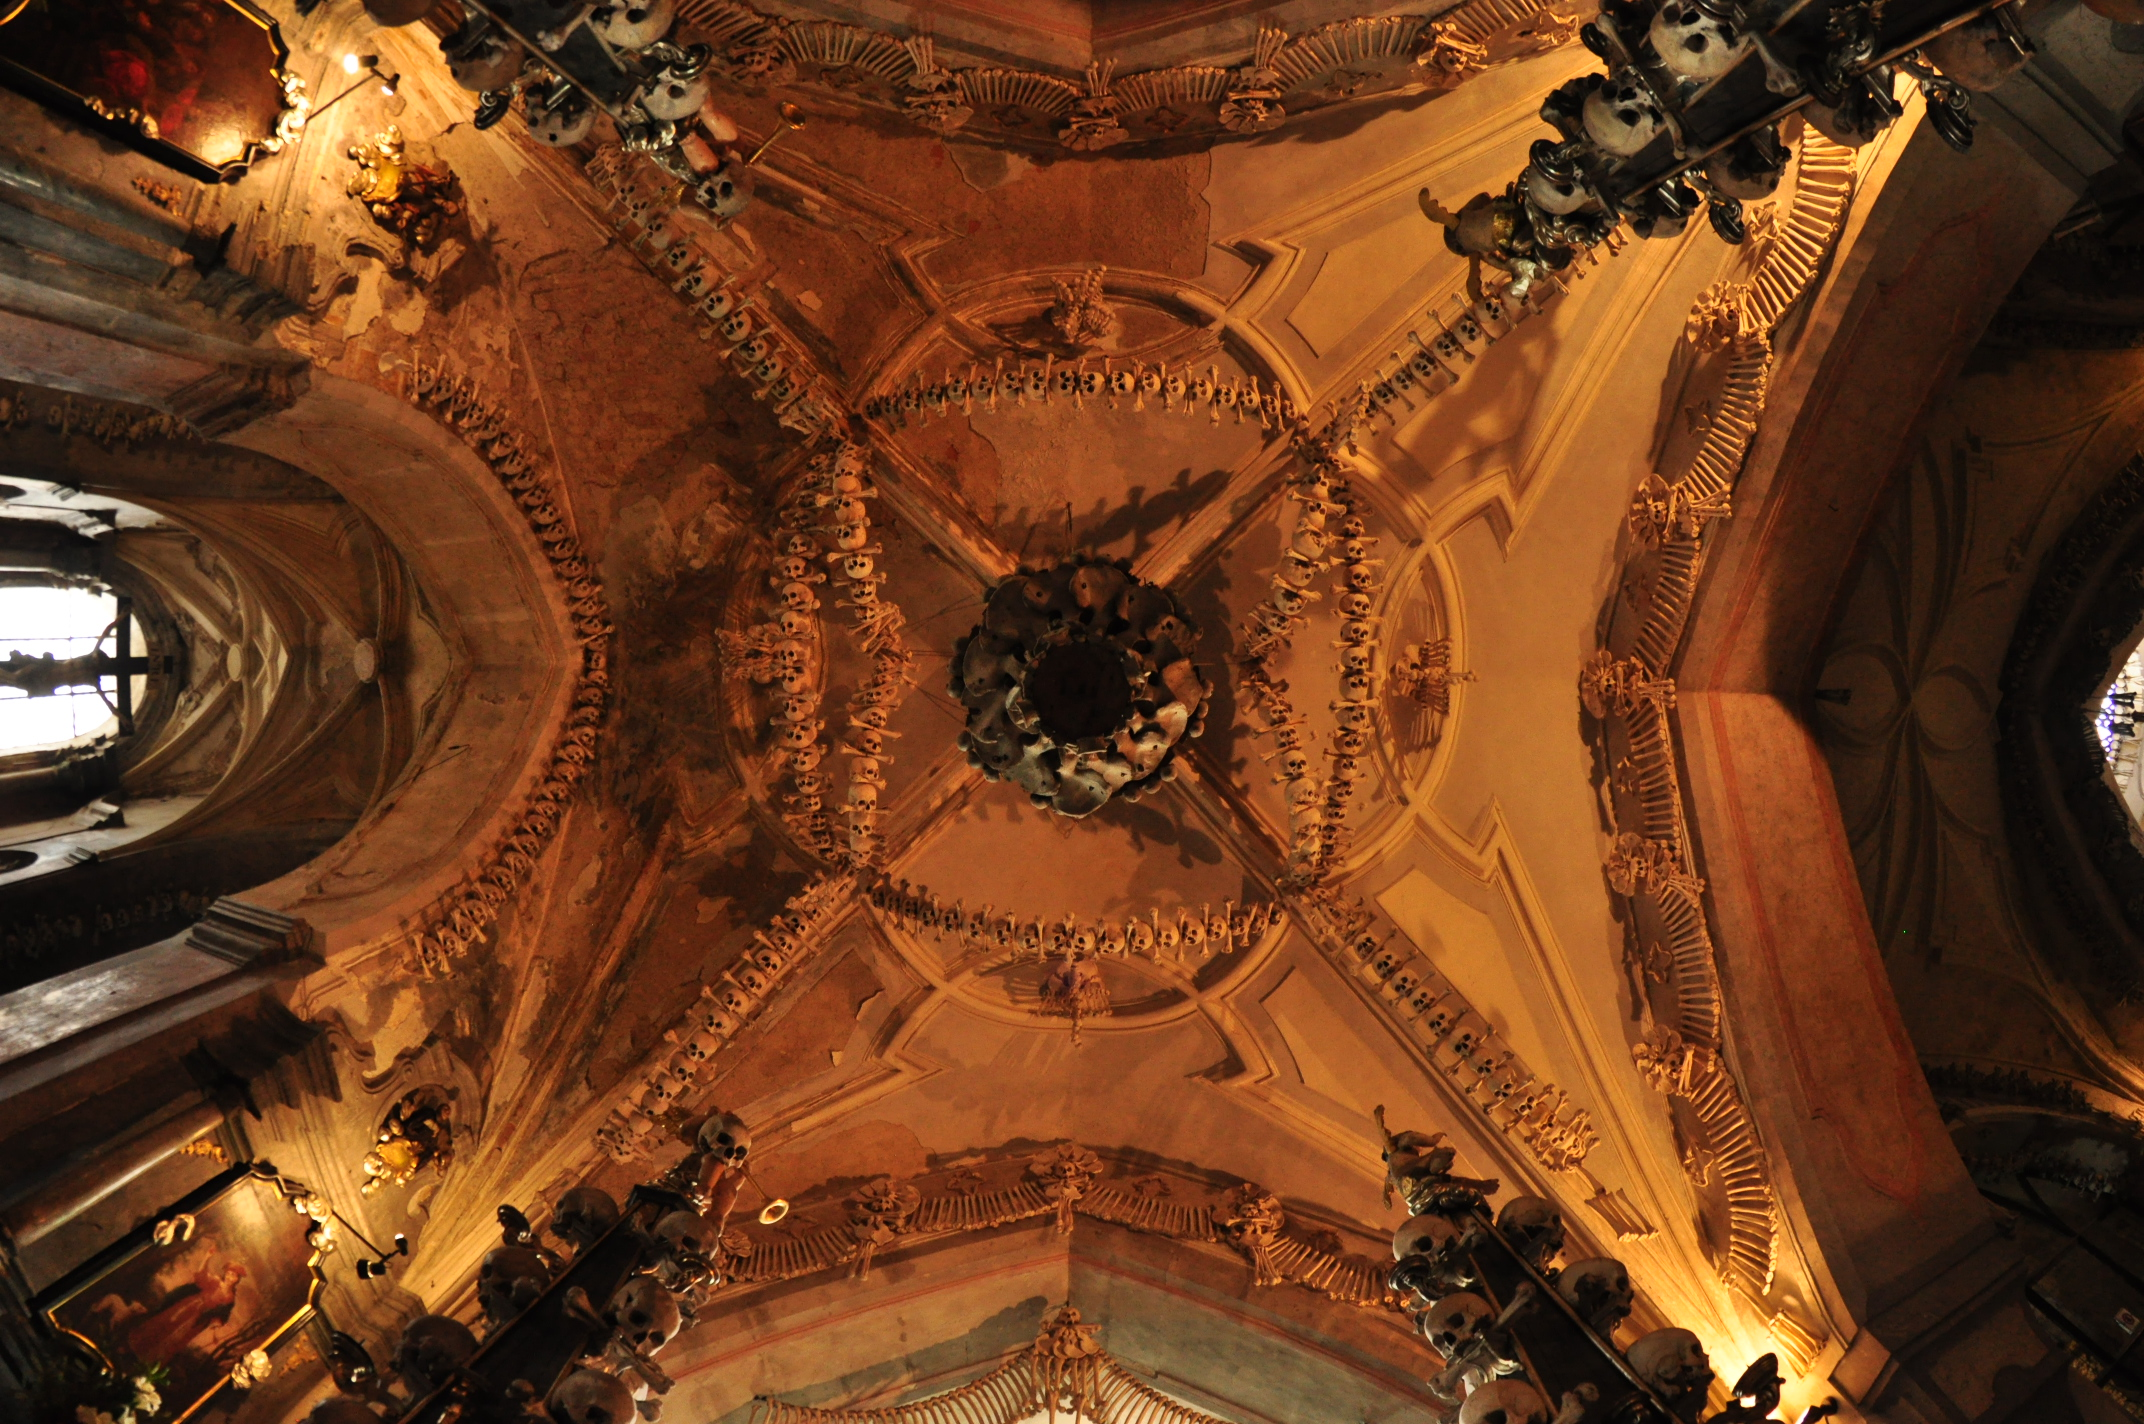 New Vehicles 2017 >> Artful ceiling in Kutná Hora's skull church - cc0.photo